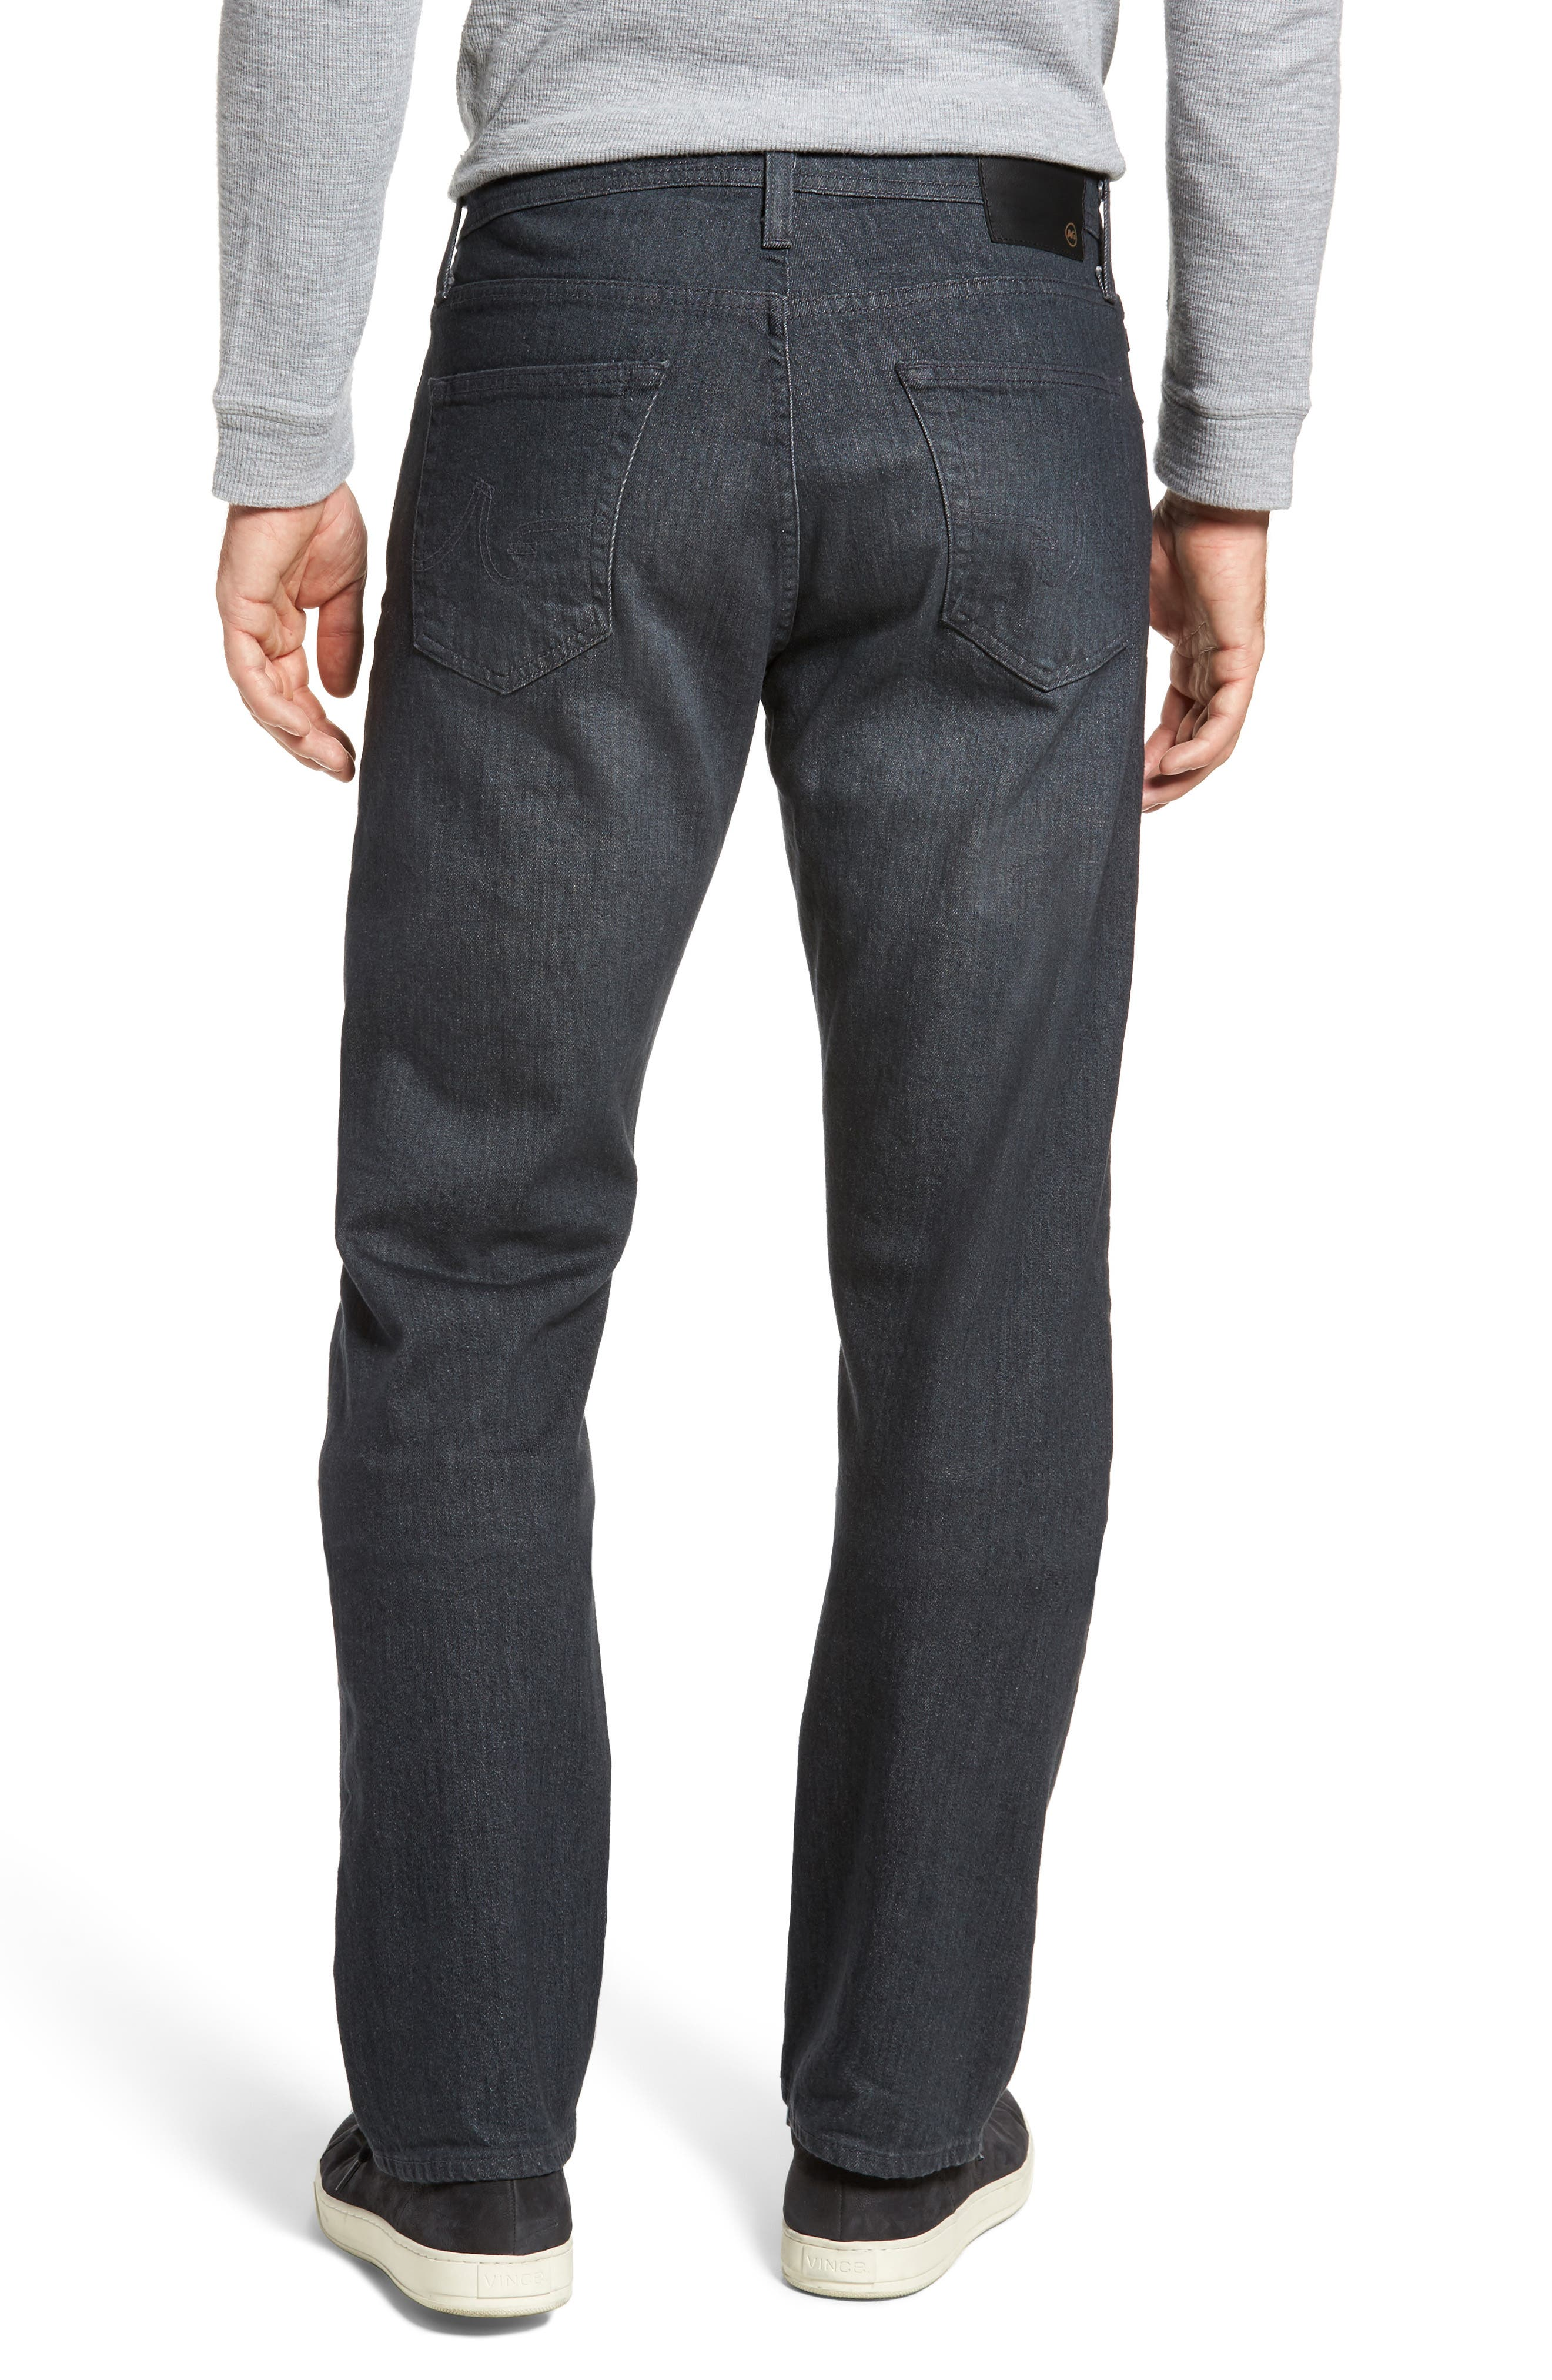 Ives Straight Fit Jeans,                             Alternate thumbnail 2, color,                             015